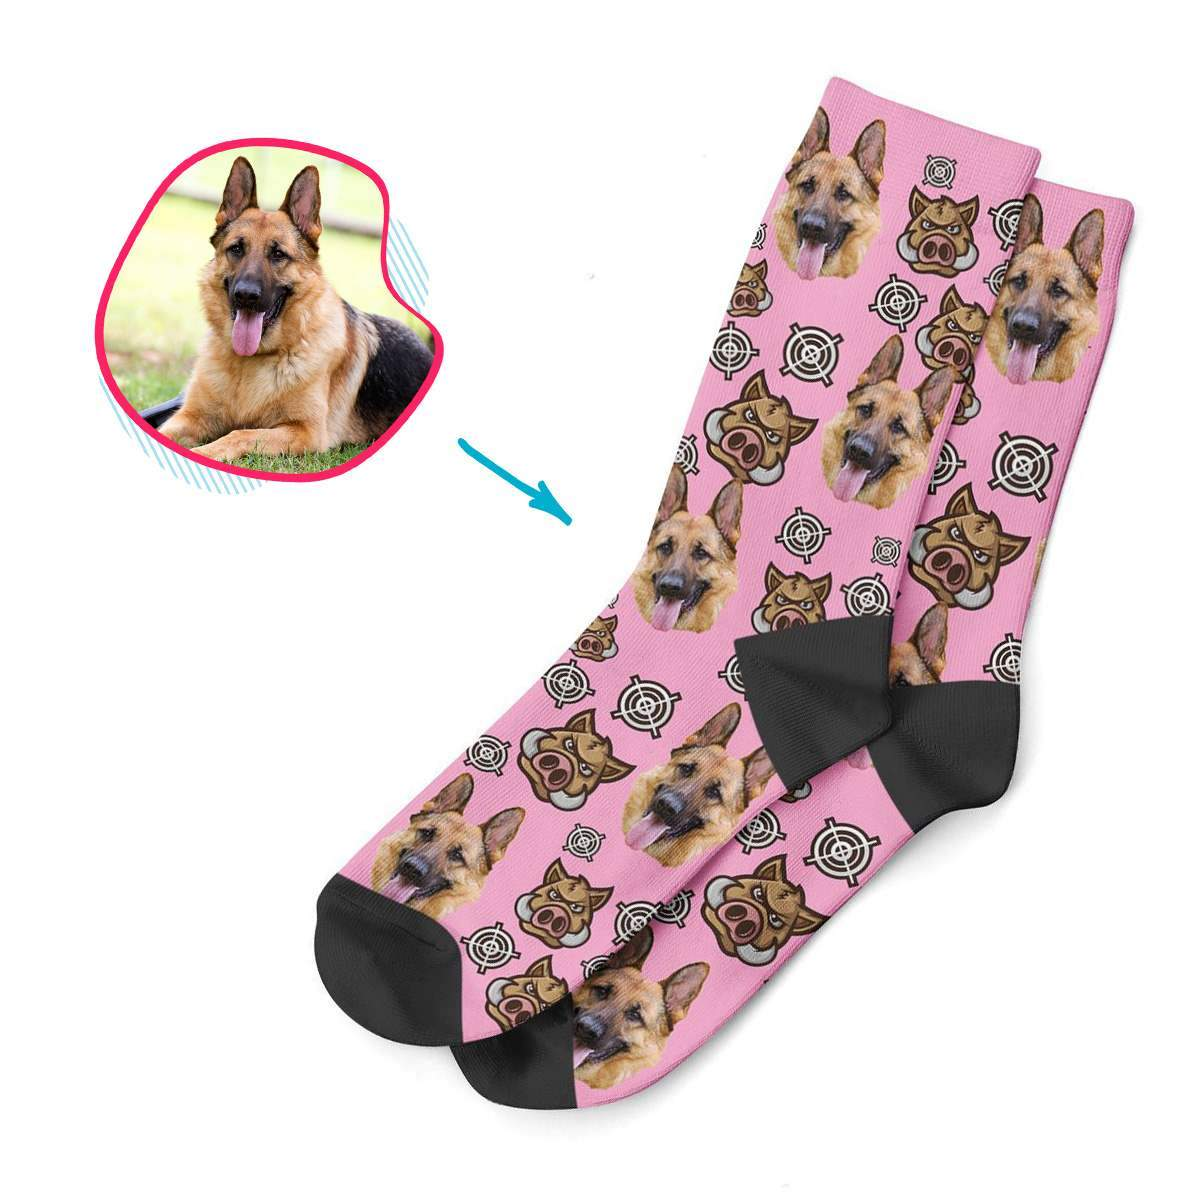 purple Boar Hunter socks personalized with photo of face printed on them